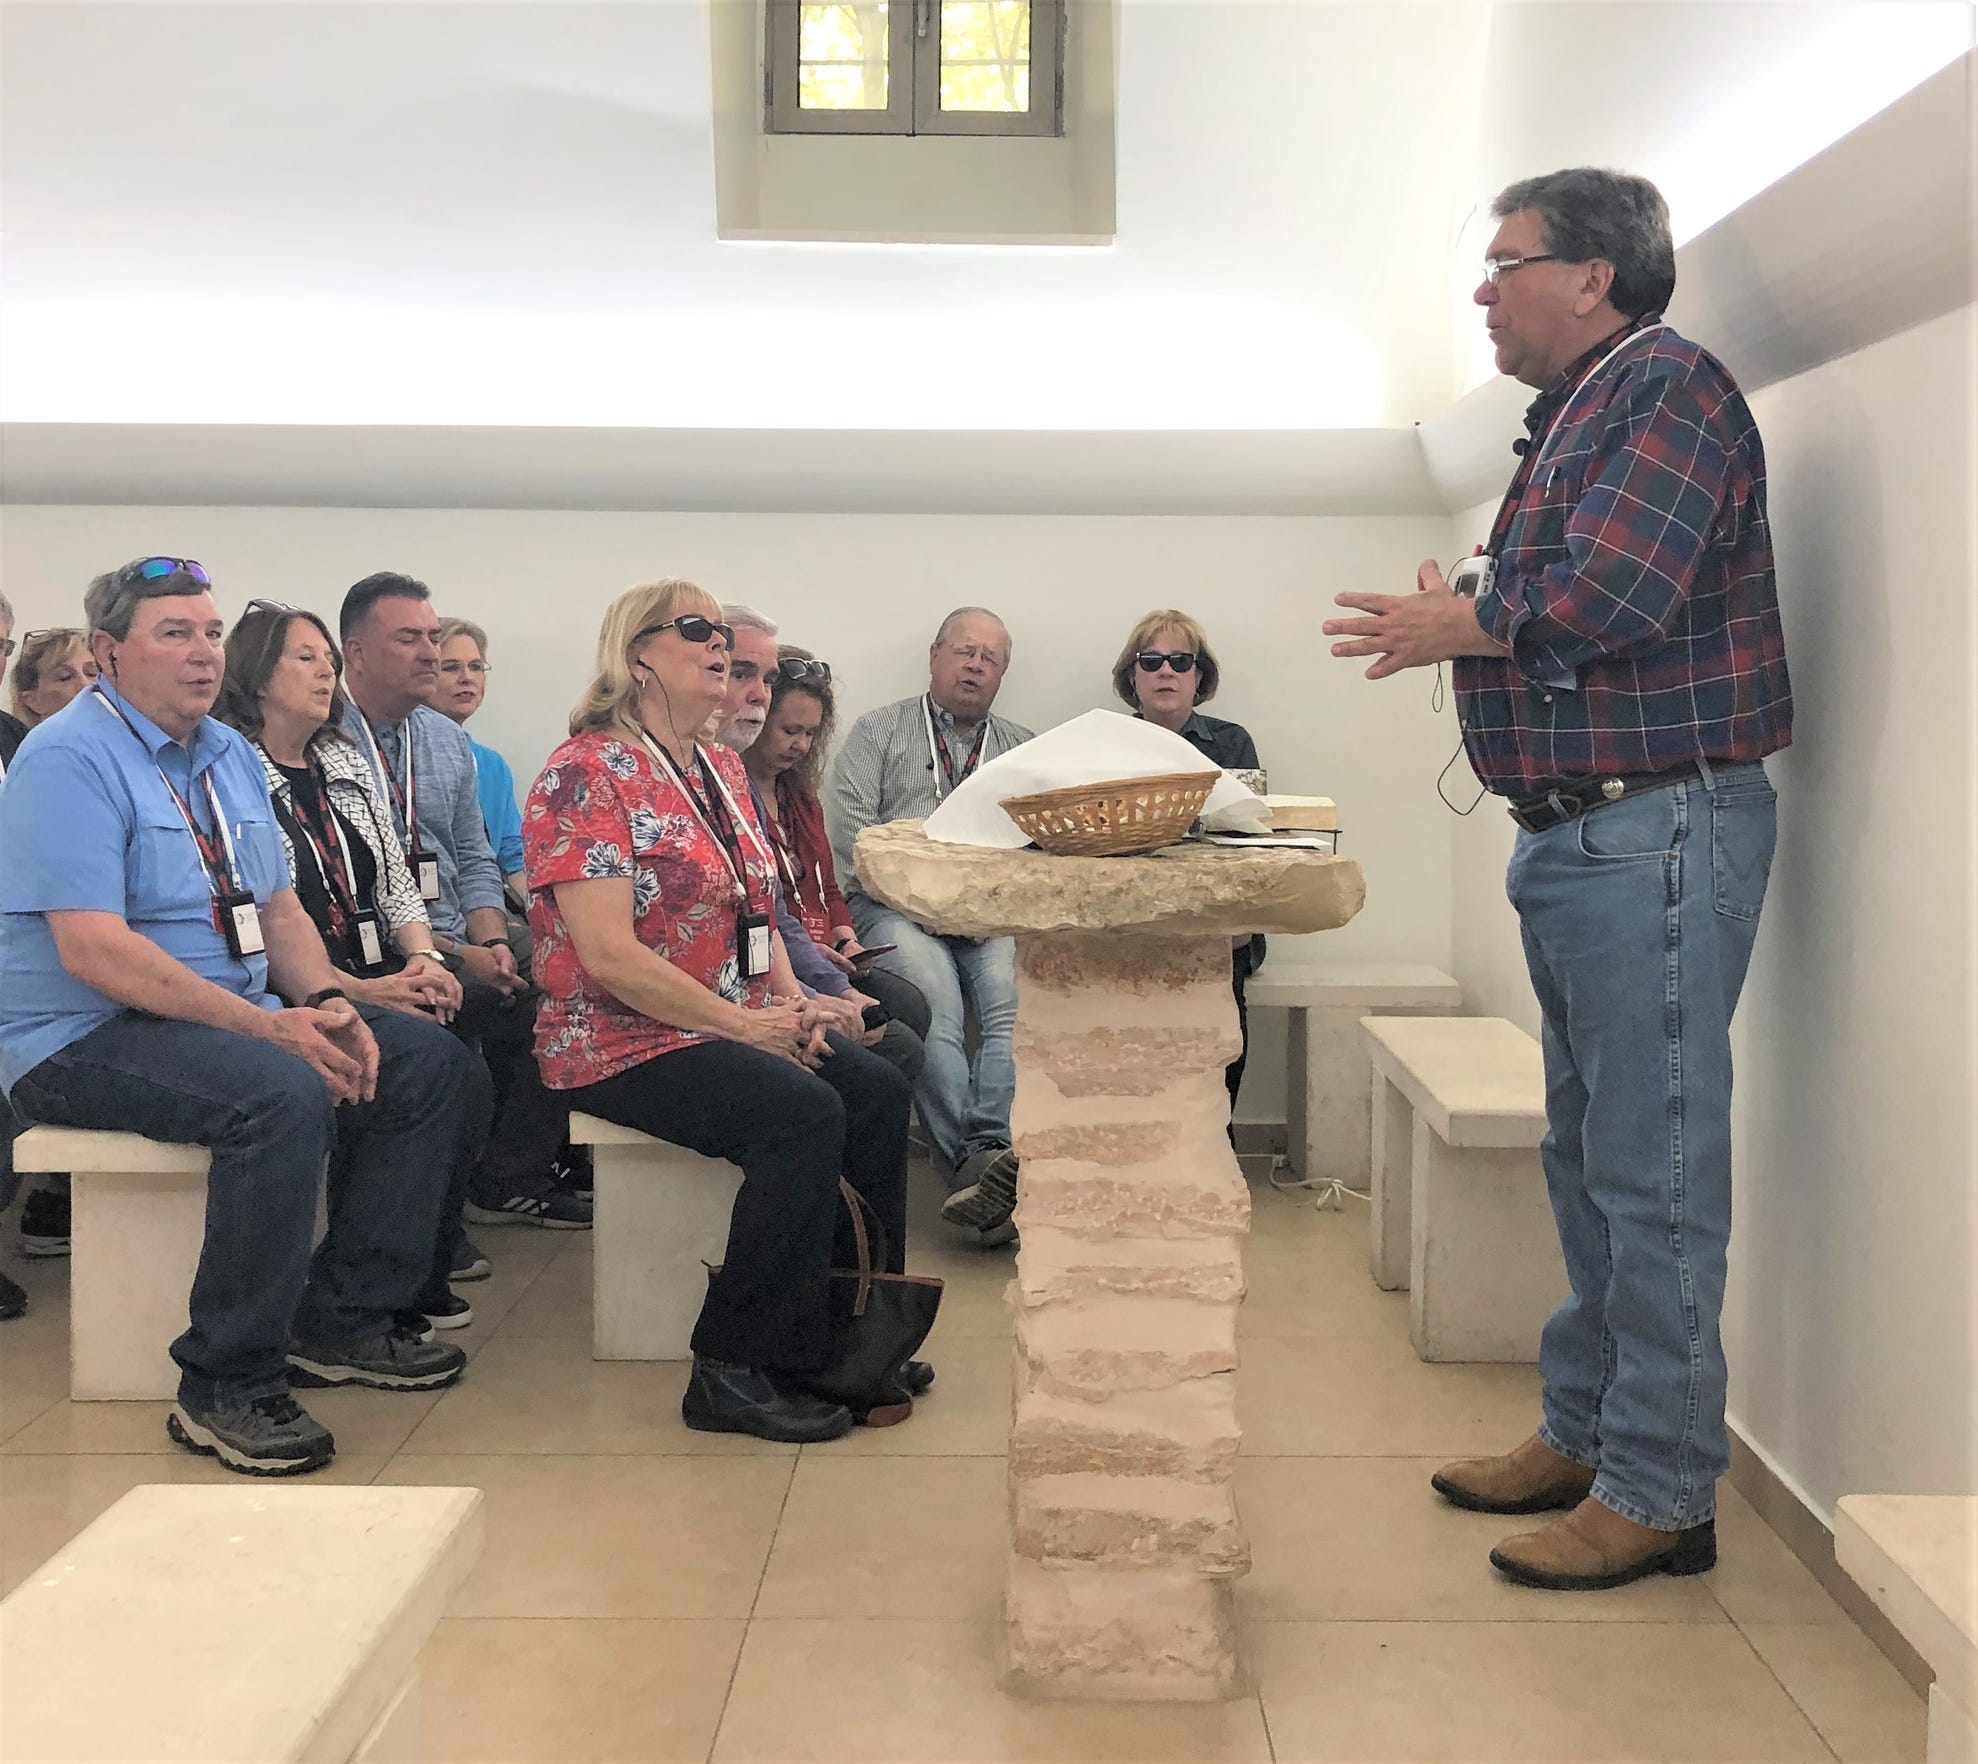 Stan Allcorn takes on a pastor's role, preparing communion for an Abilene group that was in Israel this spring. They were in the chapel at the Garden Tomb.